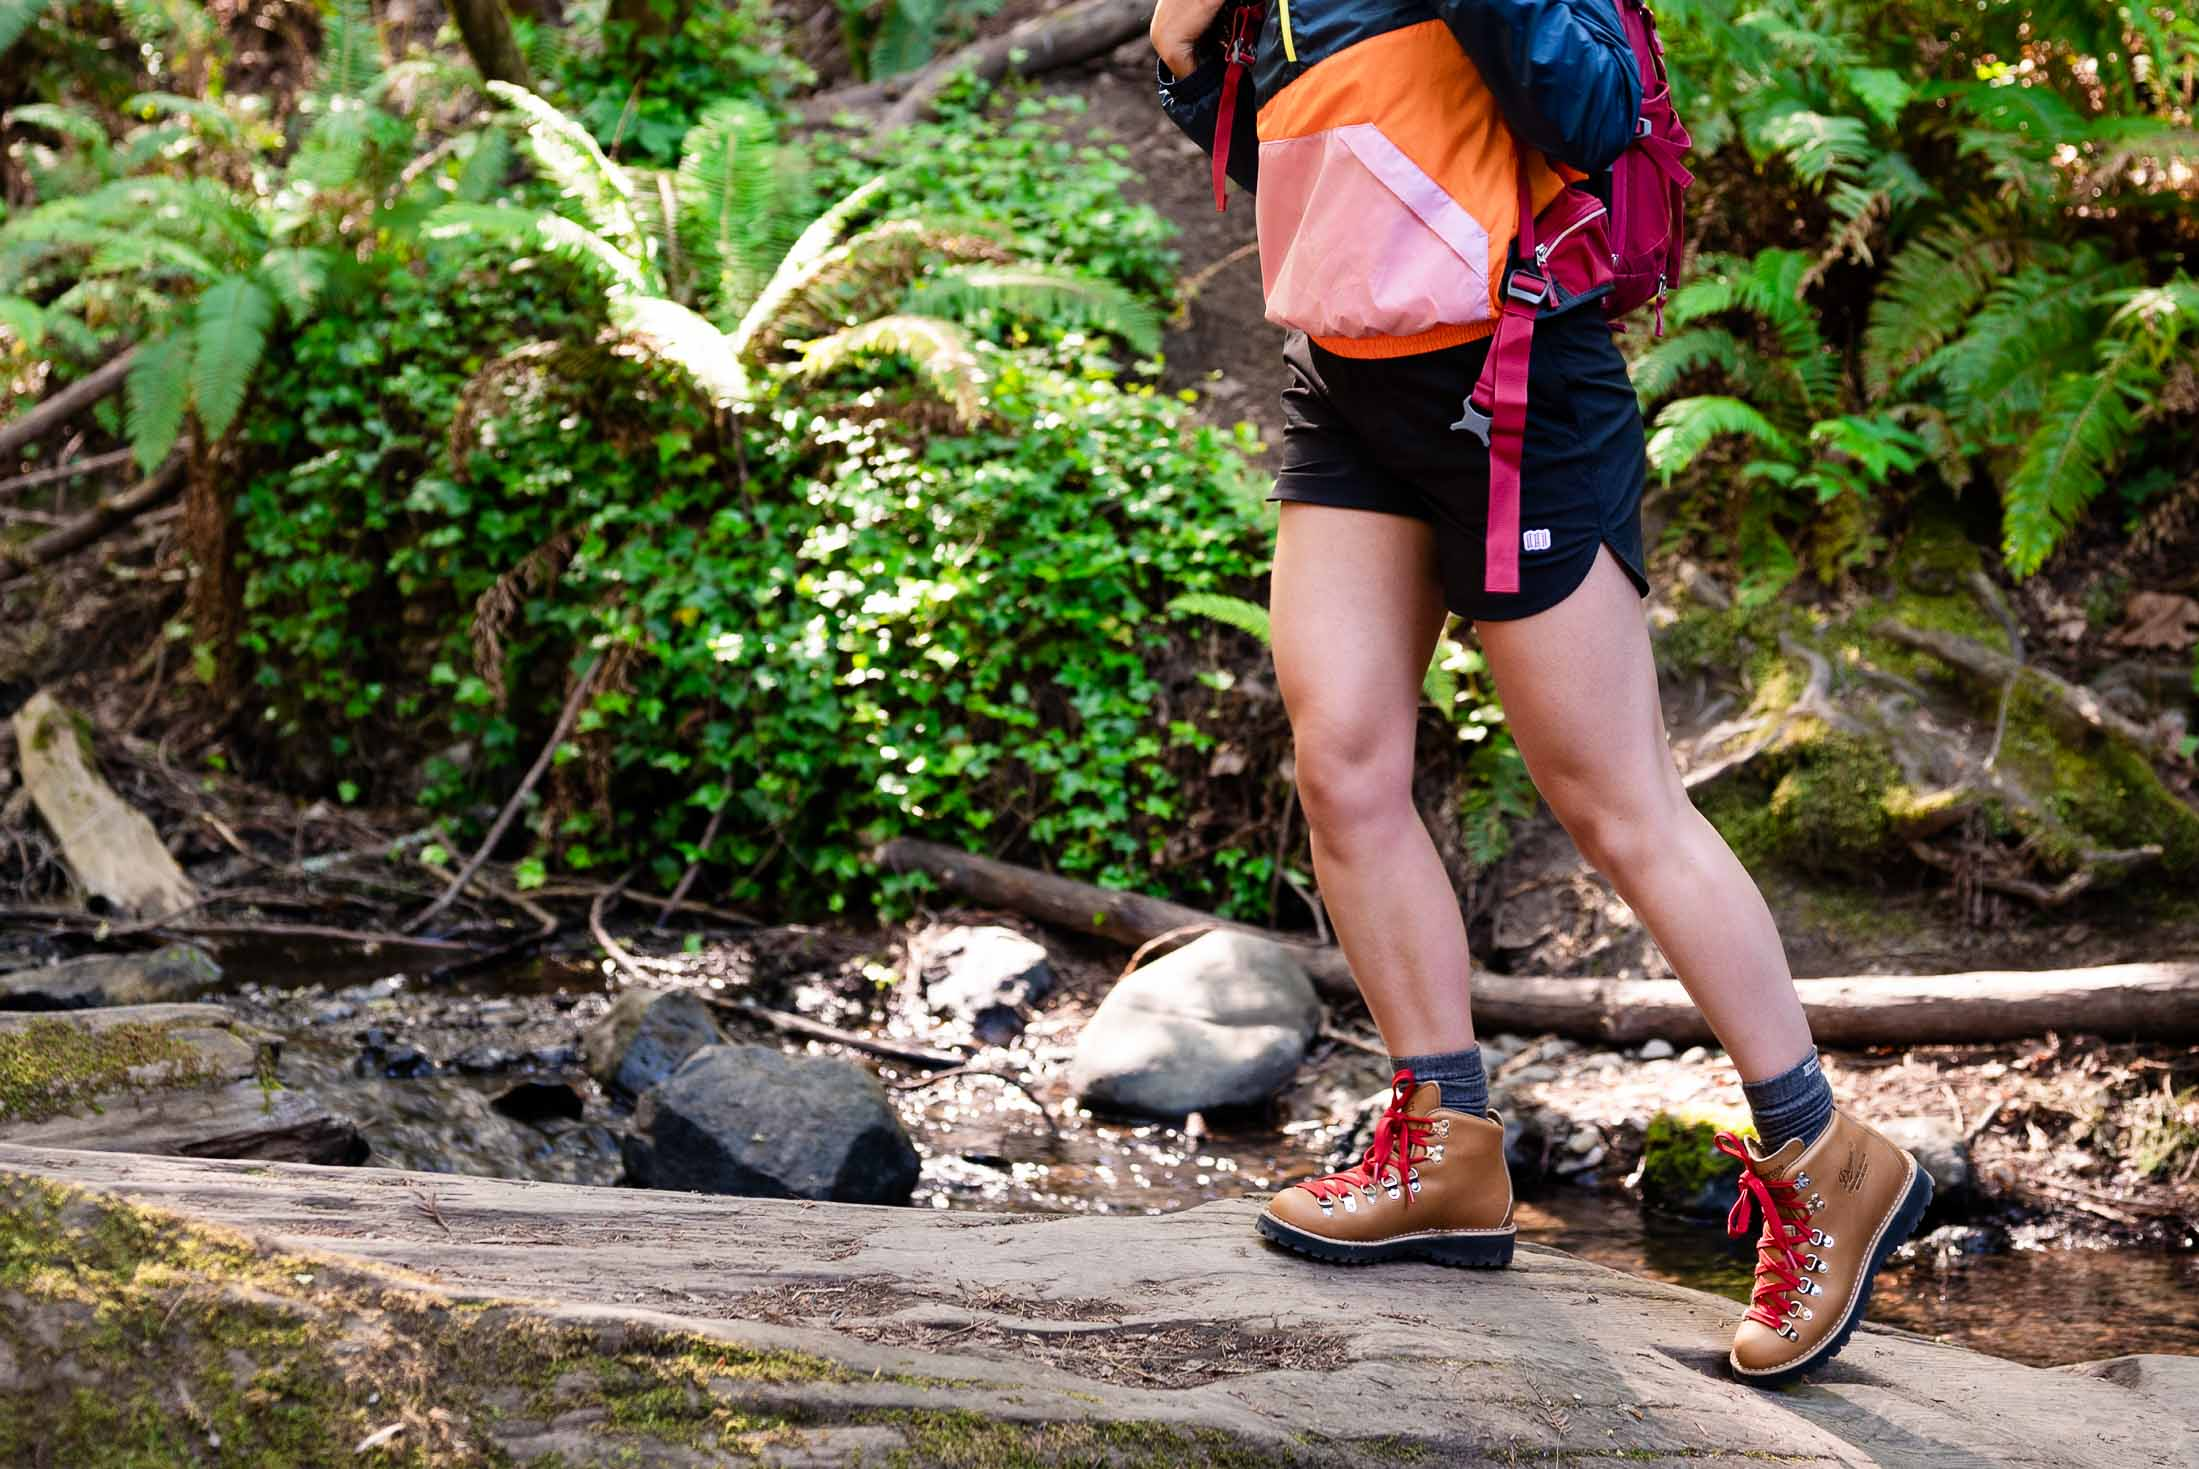 Flattering high-rise hiking shorts, waterproof Danner boots, a lightweight jacket...we've found a cute women's hiking outfit that's totally worth it.